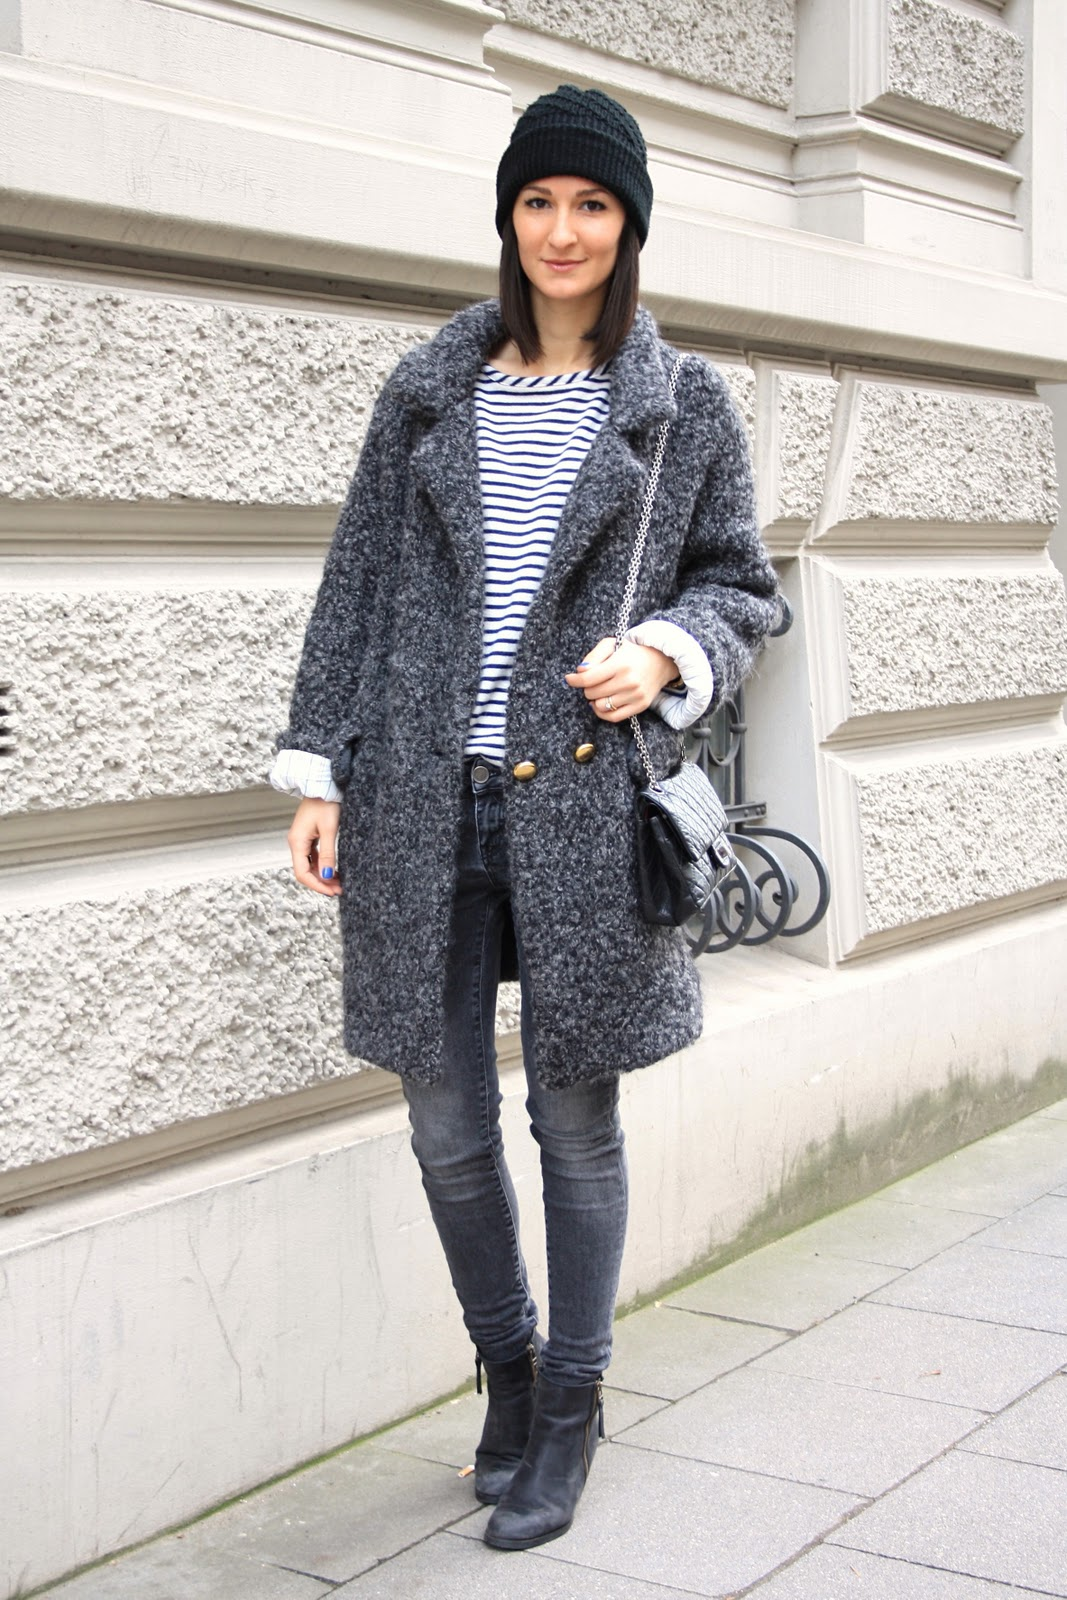 Coat Styles For Winter 2013! What To Wear? | Fashion Tag Blog